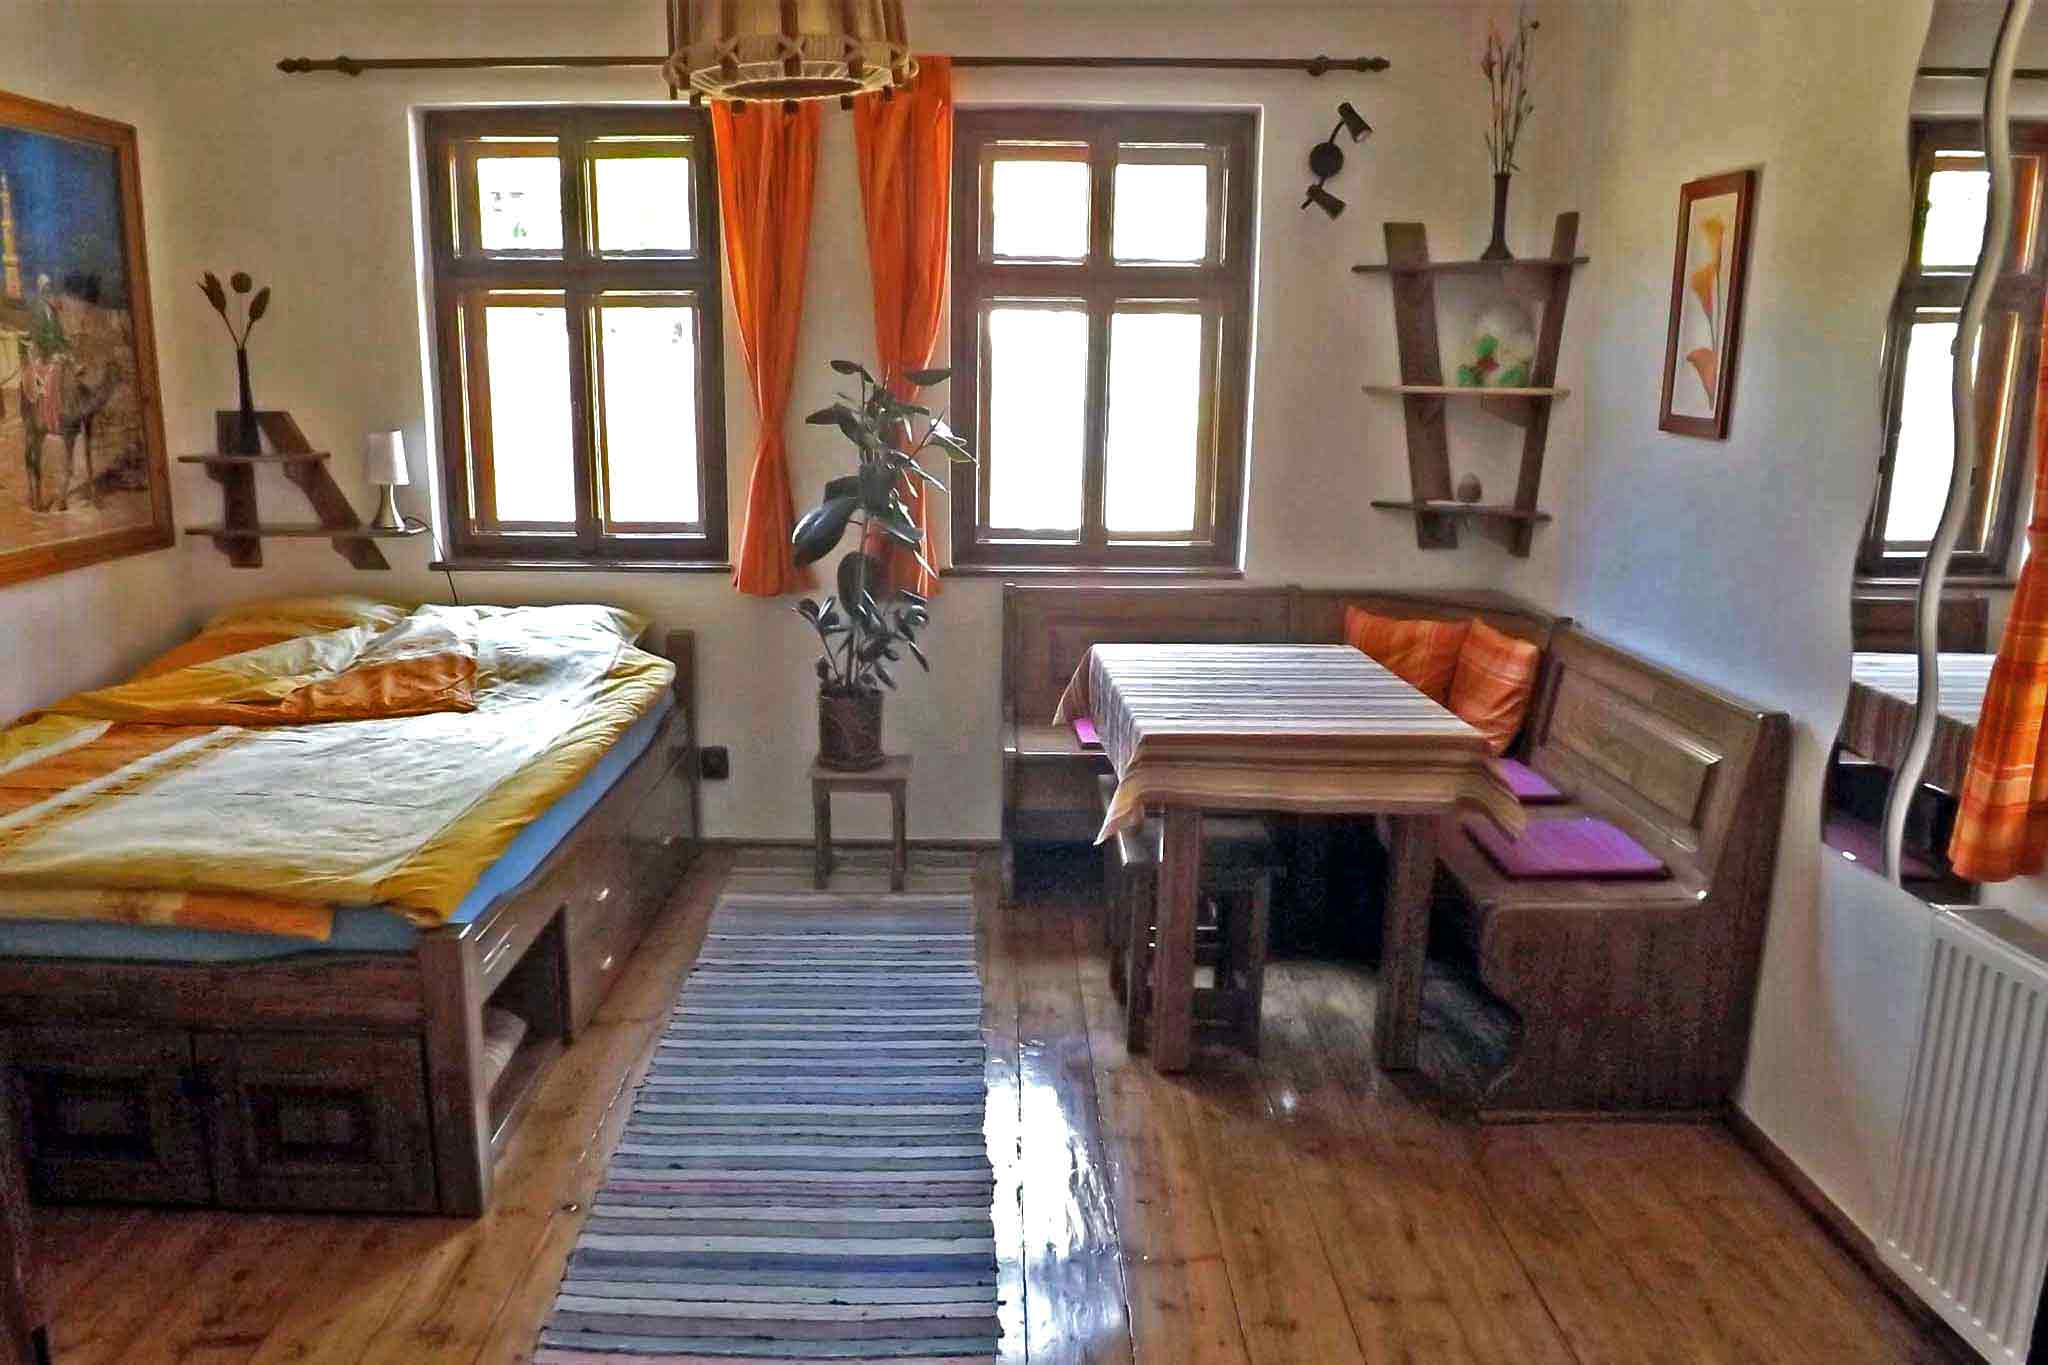 self catering country farm holidays in romania near sibiu | transylvania country houses for rent